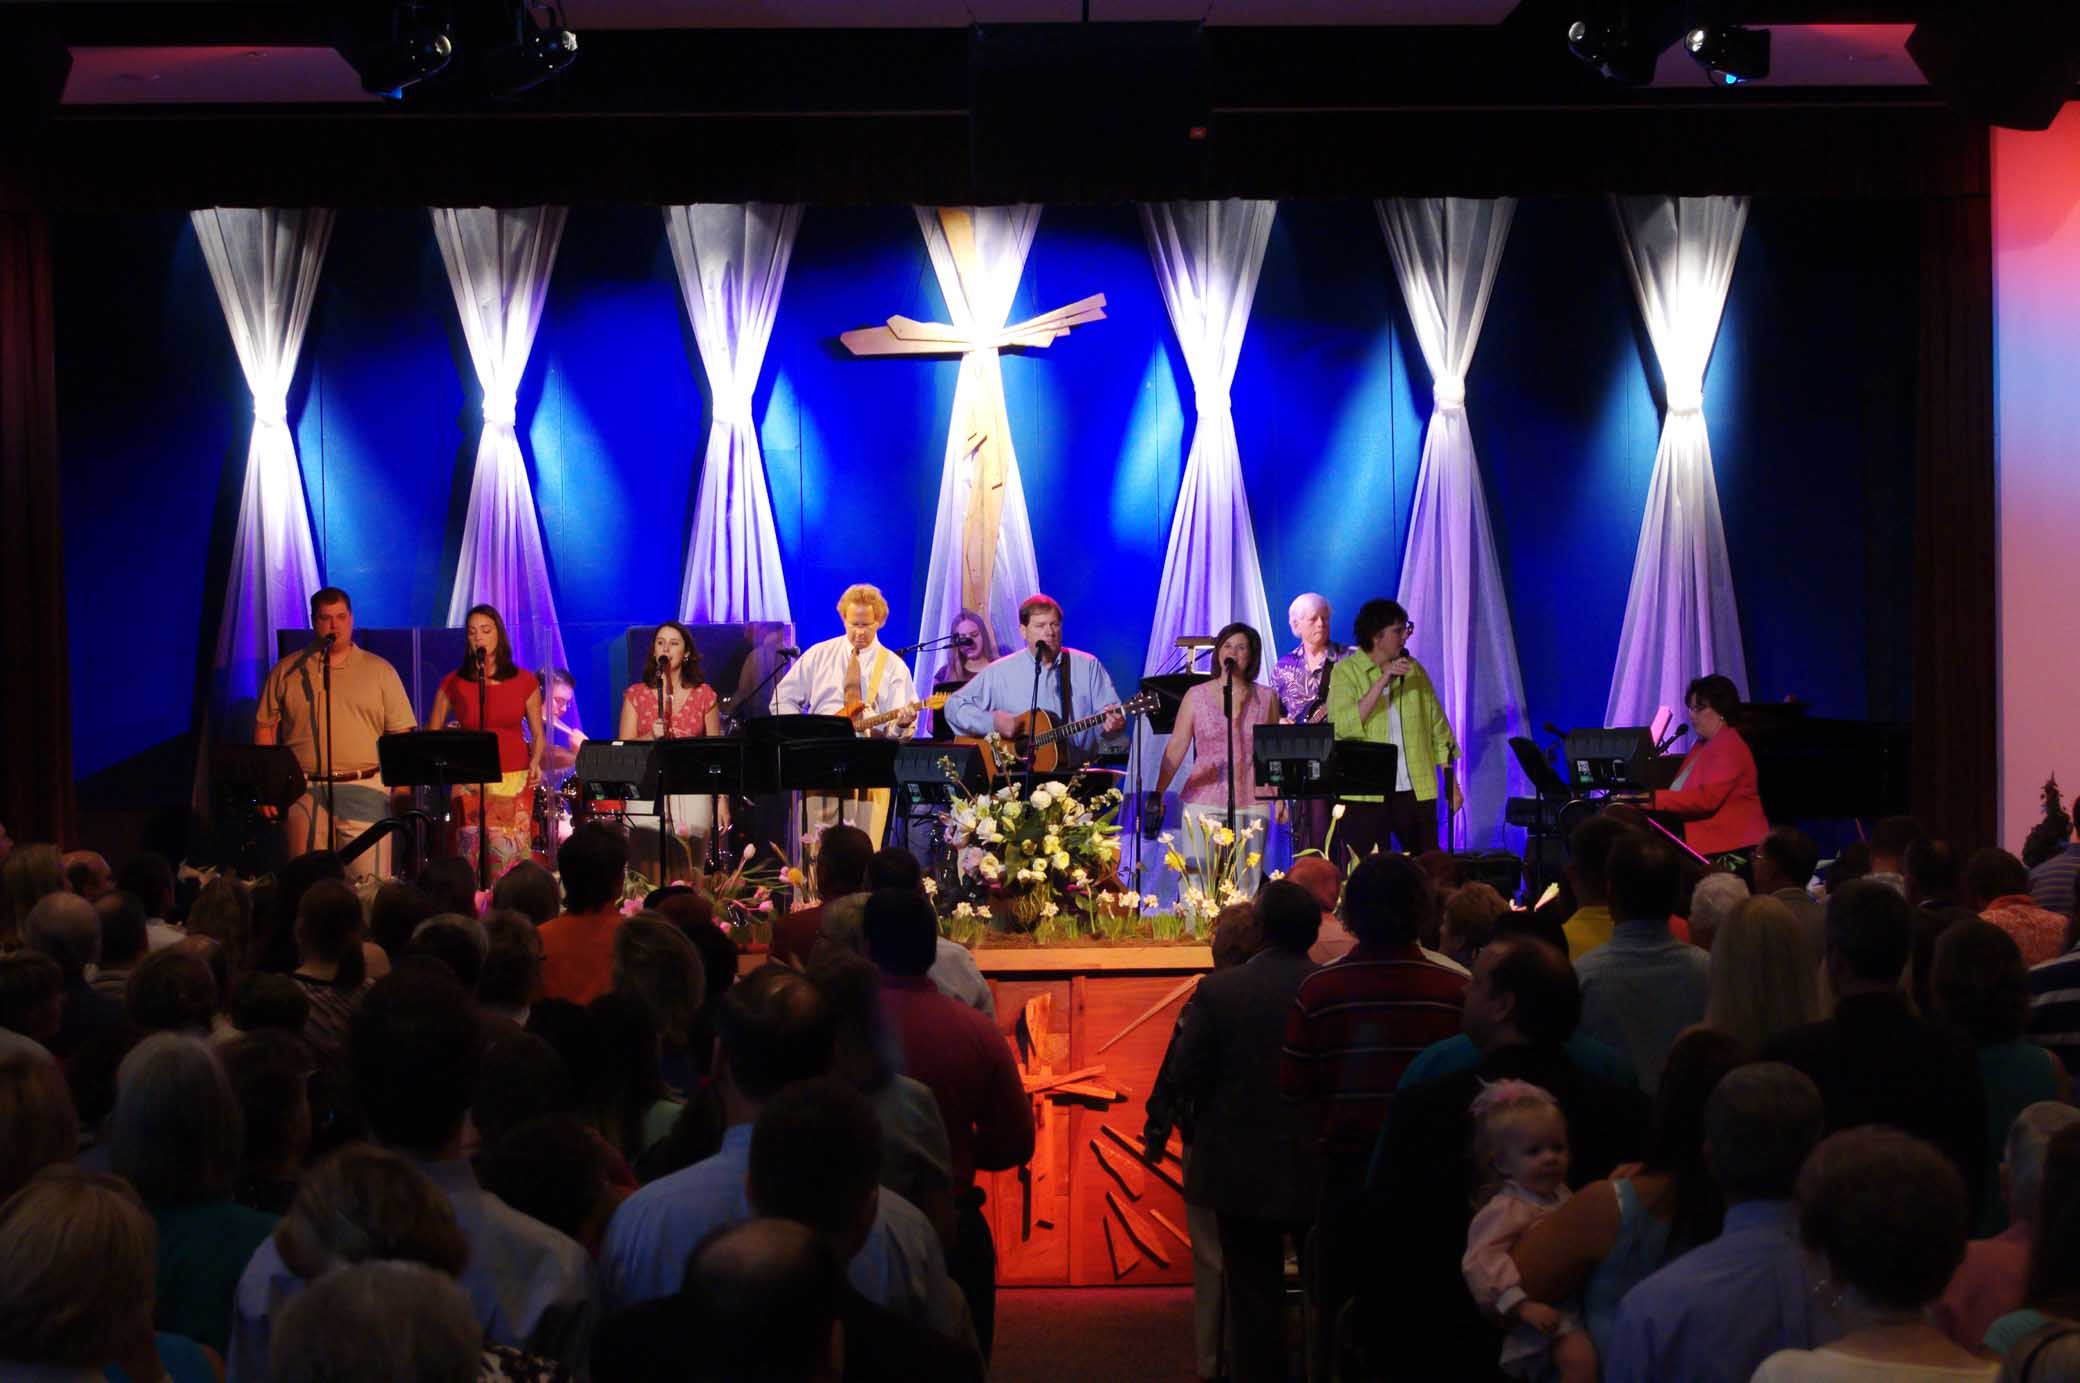 Worship Service During Easter